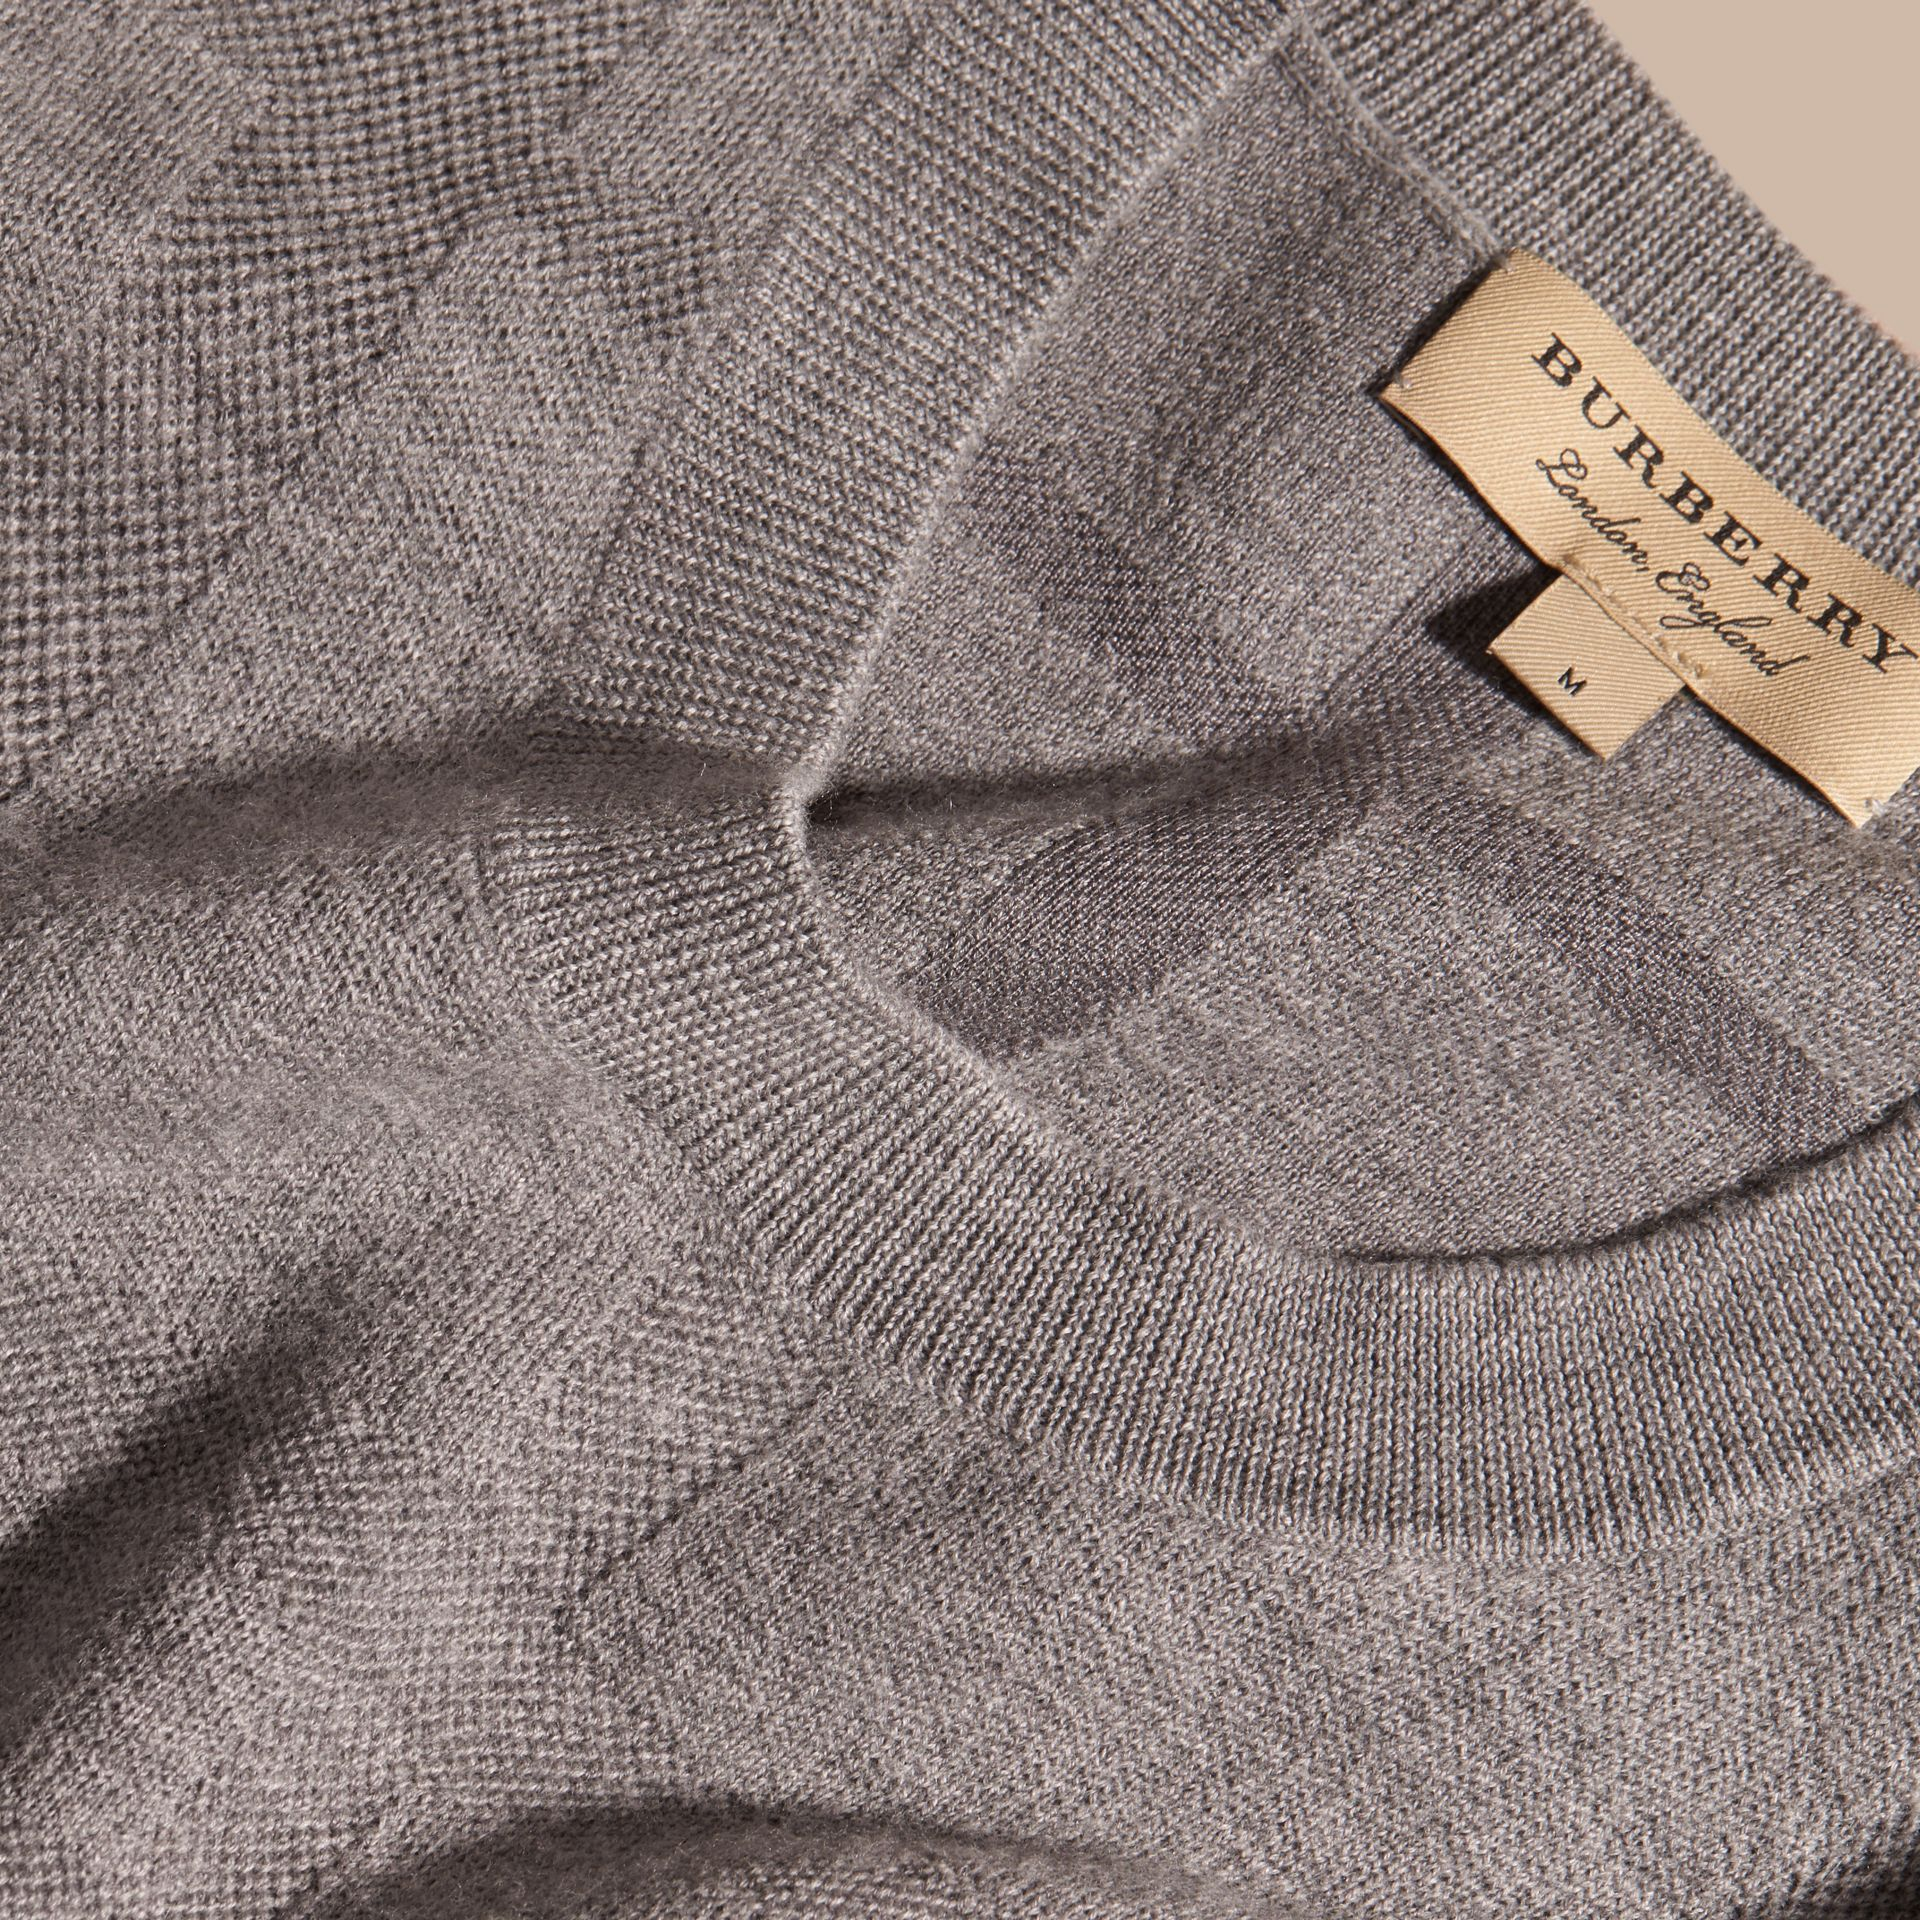 Light grey melange Lightweight Check Jacquard Silk Wool Sweater Grey Melange - gallery image 2